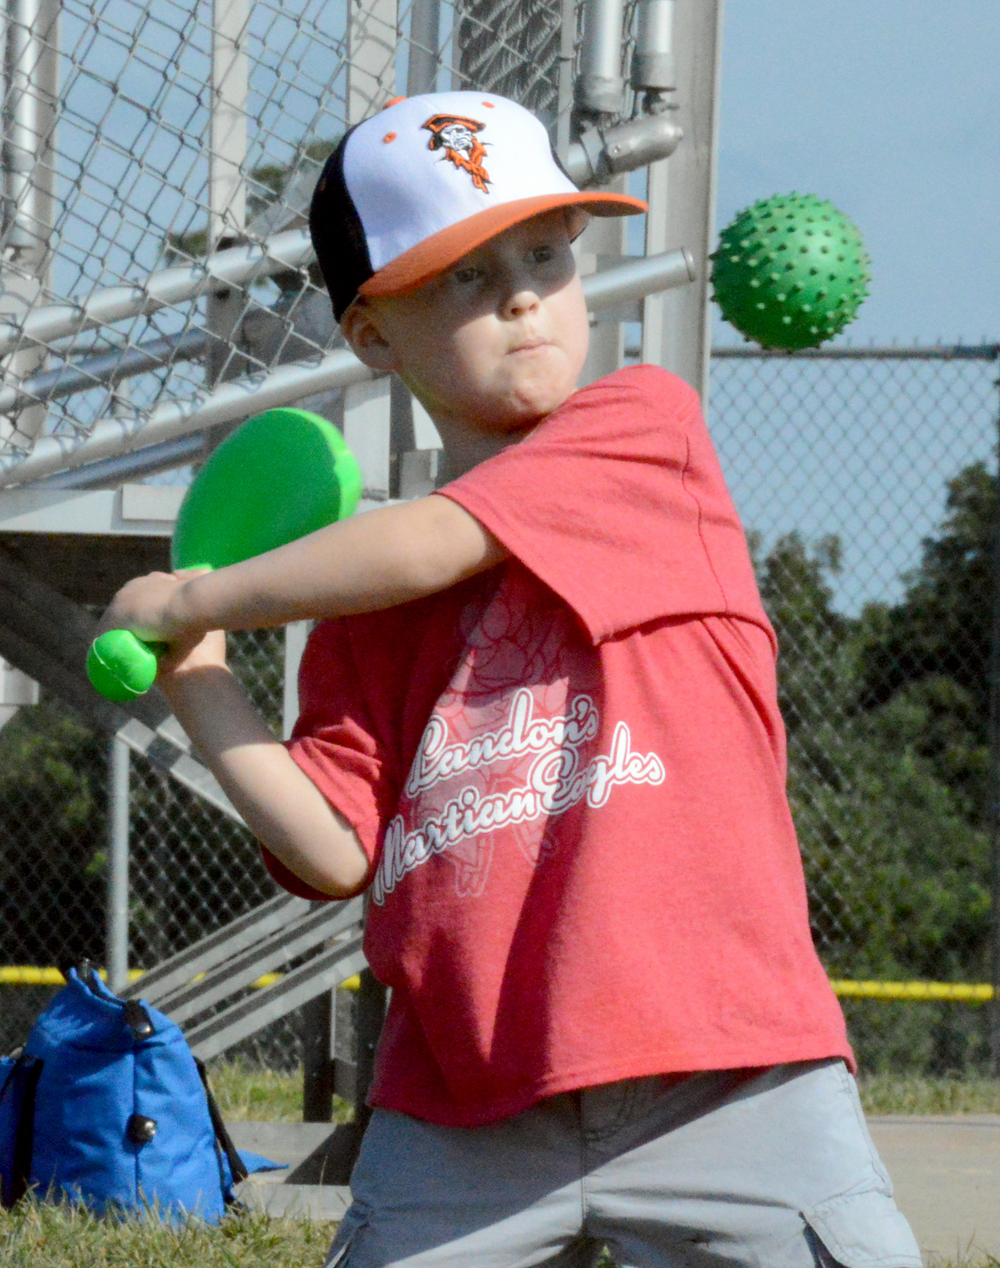 BRENT ROSENAUER/Citizen photo Landon Jaros, 5, takes a swing with a plastic bat Saturday, July 30 at Platte Ridge Park during the second annual Clifford Shanks Memorial Softball Tournament. Proceeds from the tournament went to Jaros' family to help with medical expenses.